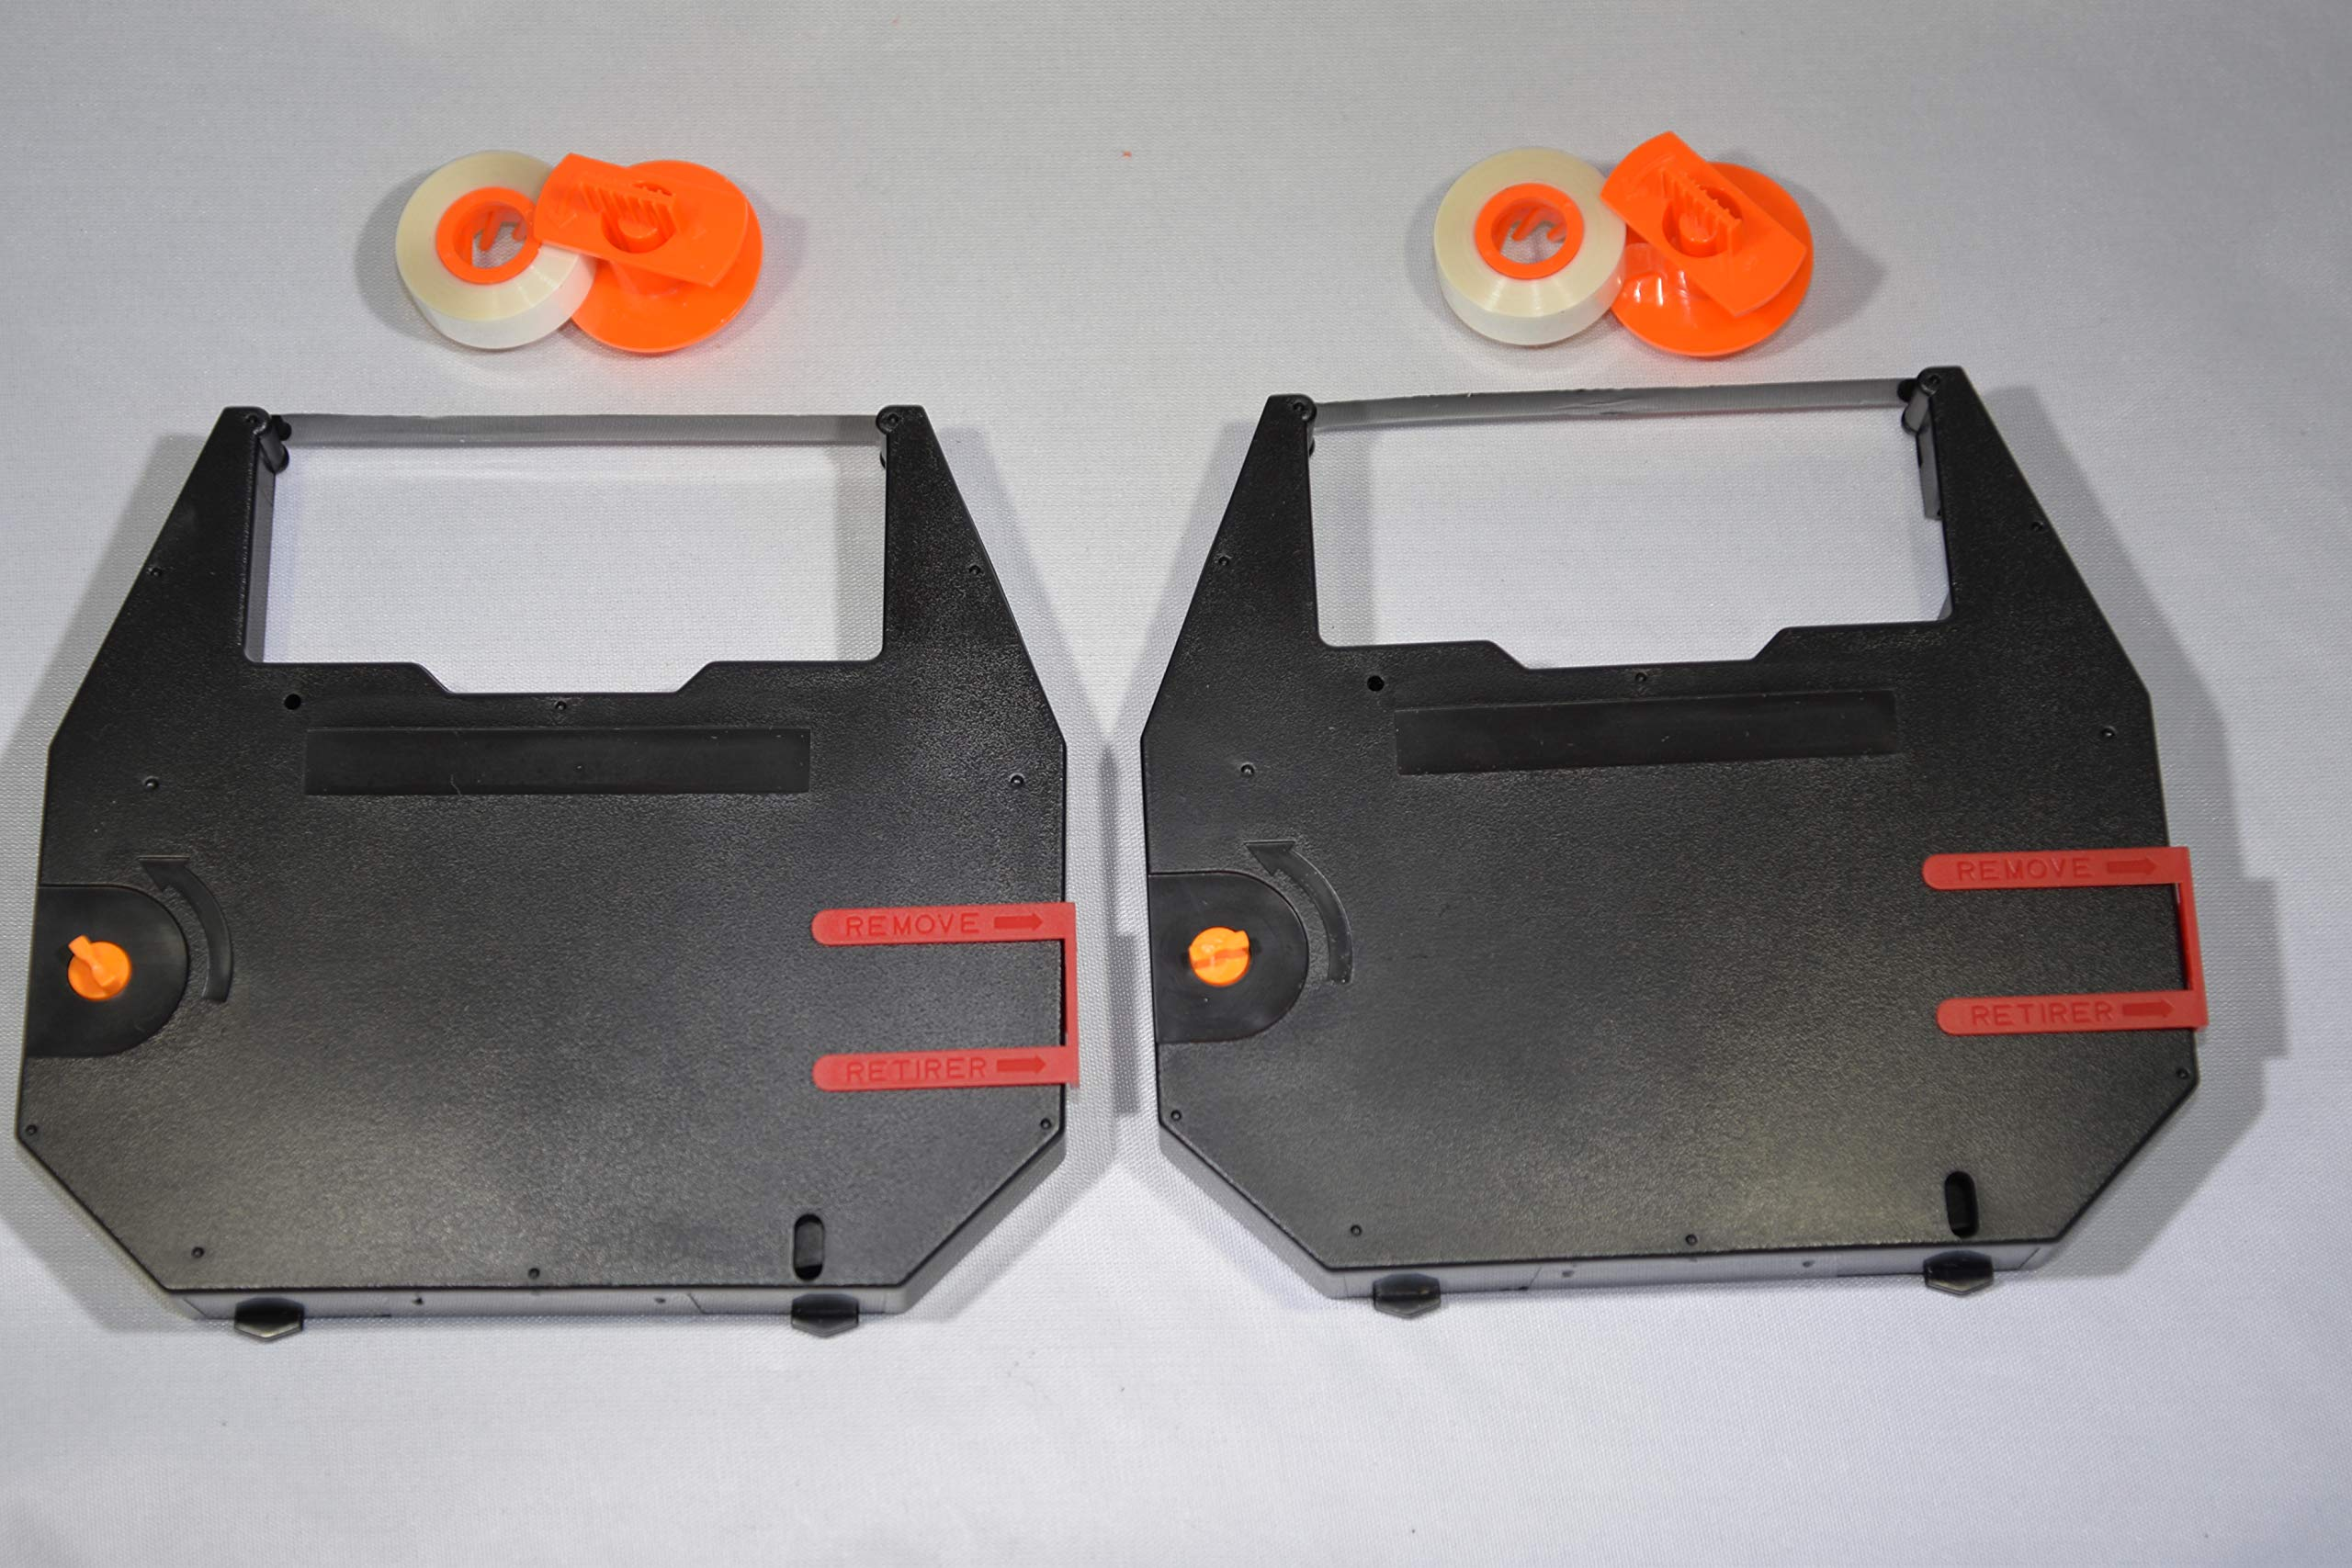 FJA Products Compatible Typewriter Ribbon & Correction Spools for Sears SR 1000 The Electronic II Typewriter. The Package Includes 2 Black Typewriter Cassettes and 2 Lift Off Correction Tape Spools by FJA Products